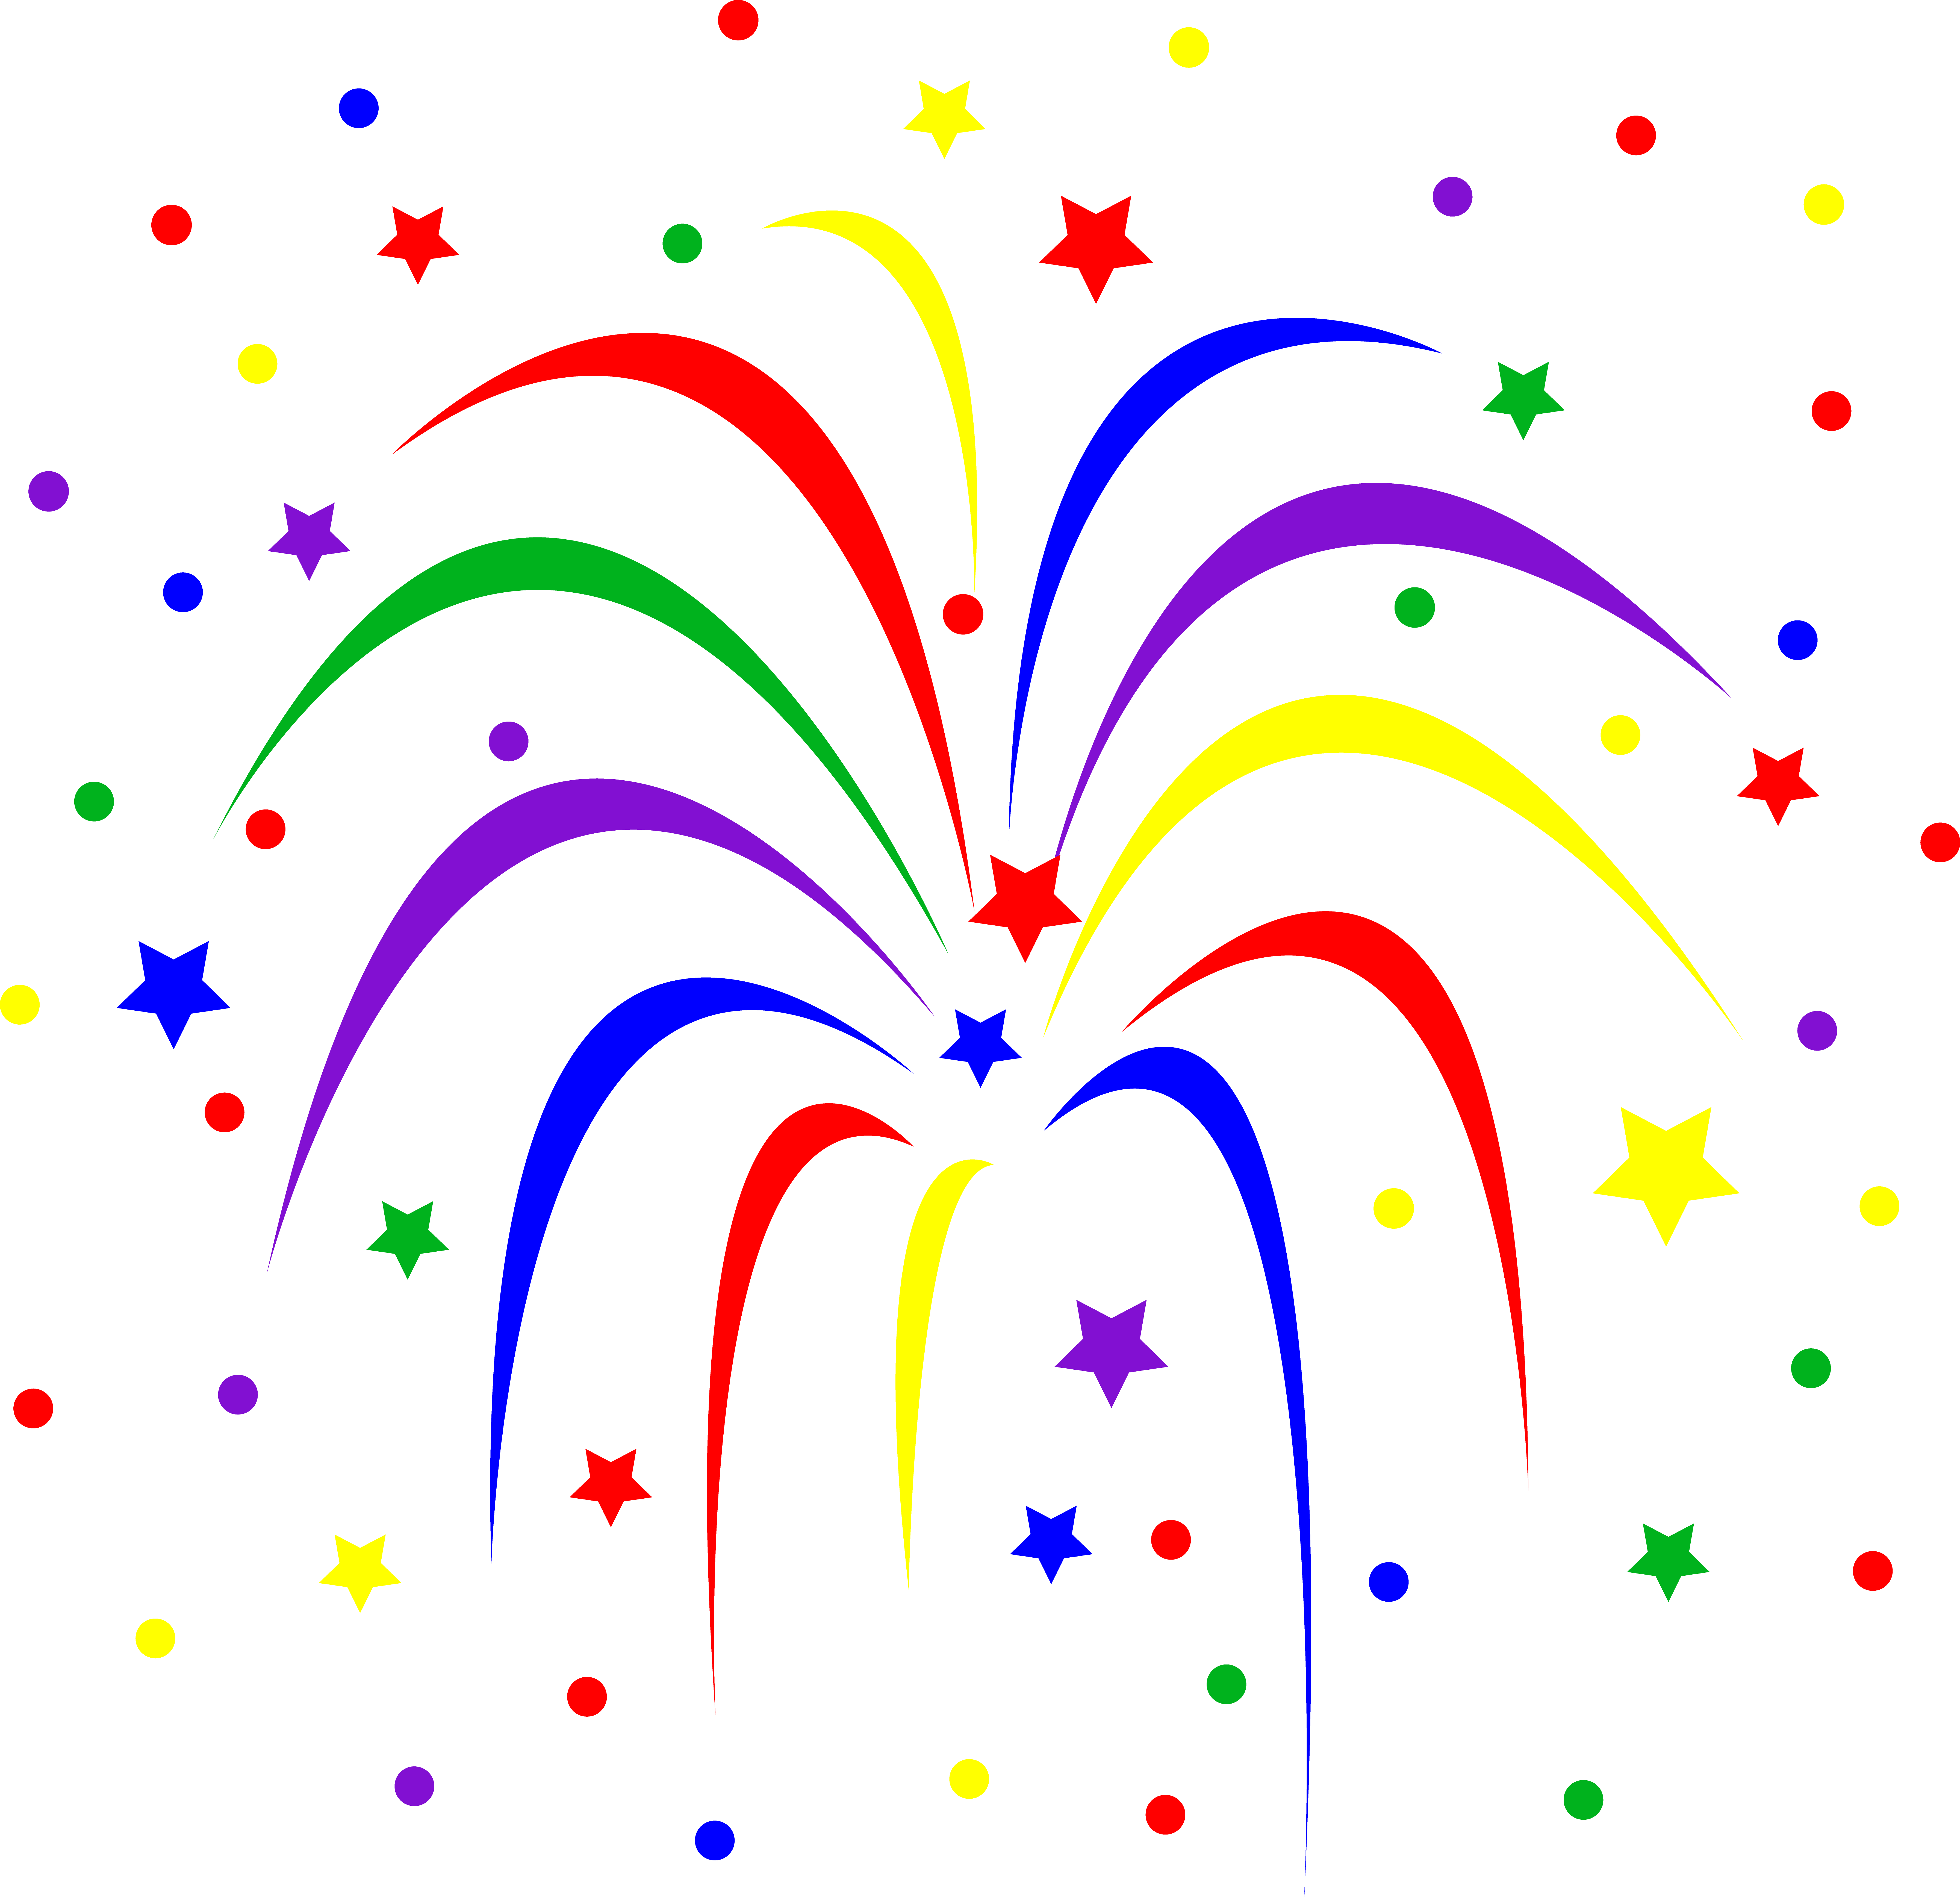 4th of july fireworks border clipart panda free clipart images rh clipartpanda com happy fourth of july fireworks clipart